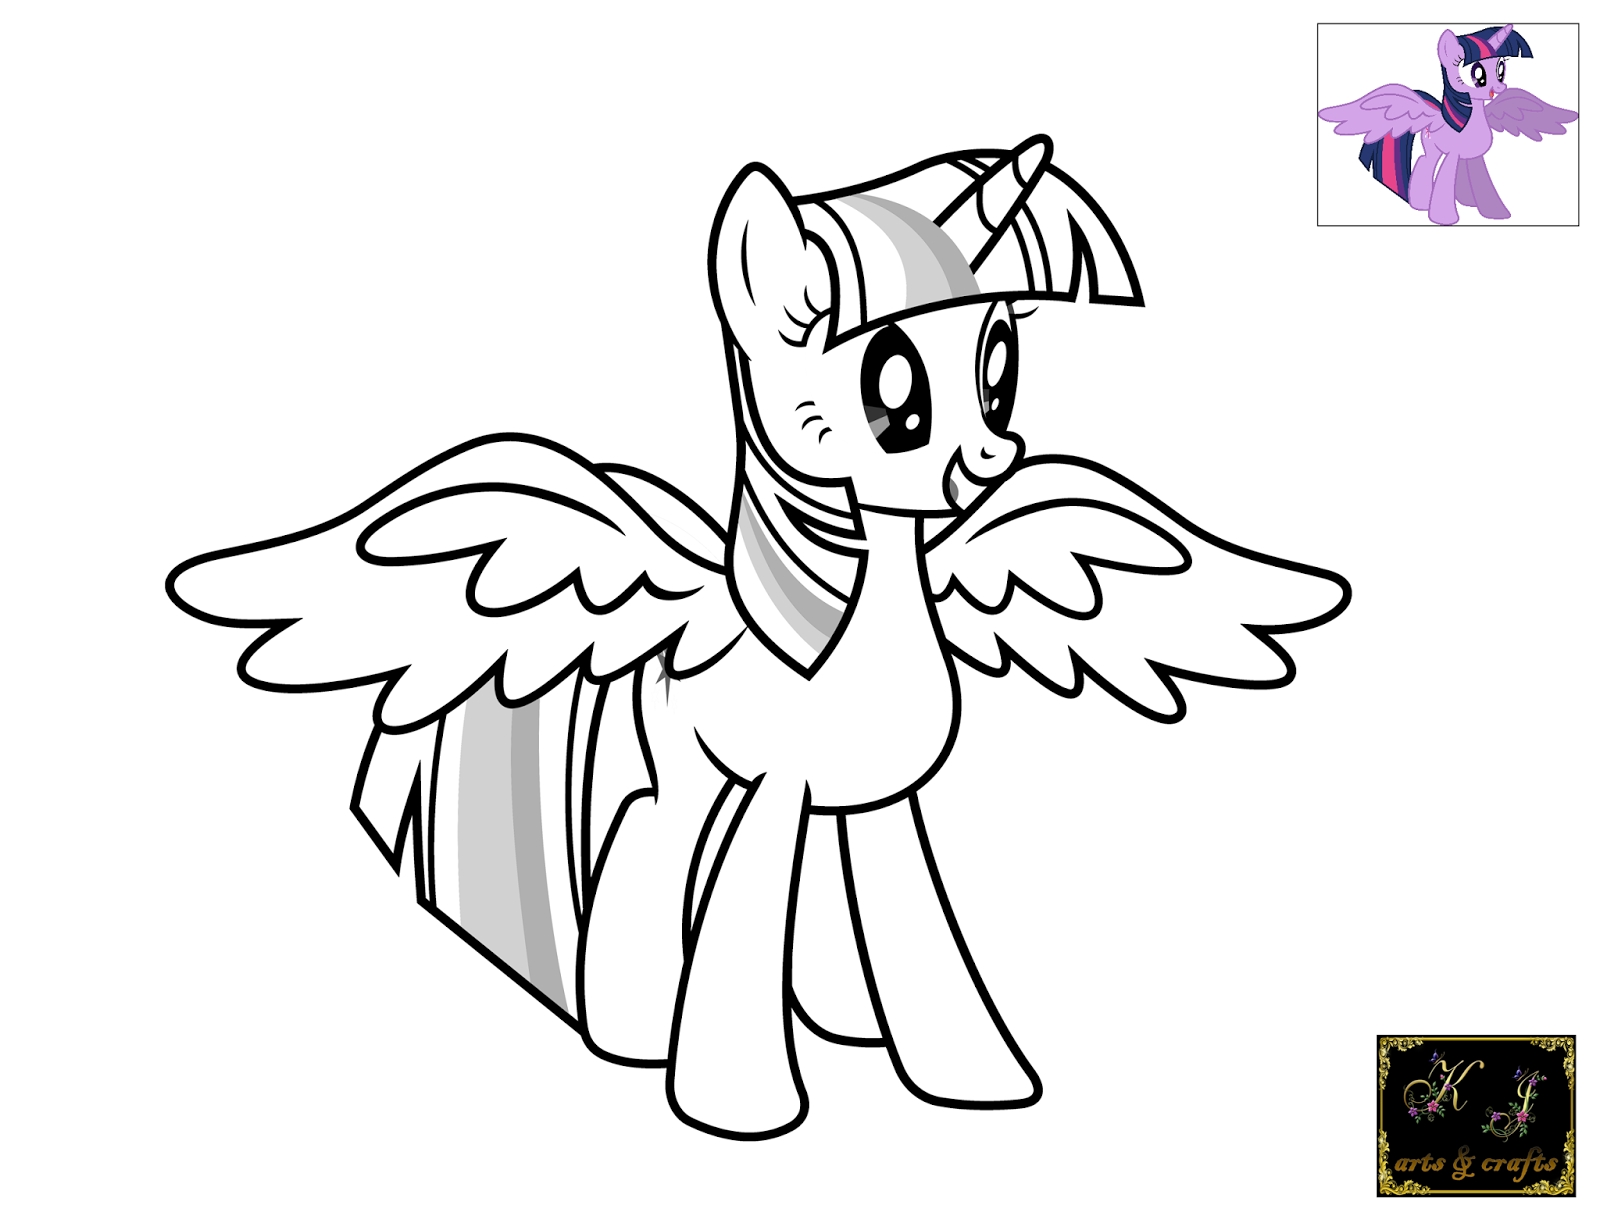 Twilight Sparkle Coloring Page - Kj Coloring Pages Twilight Sparkle Coloring Pages